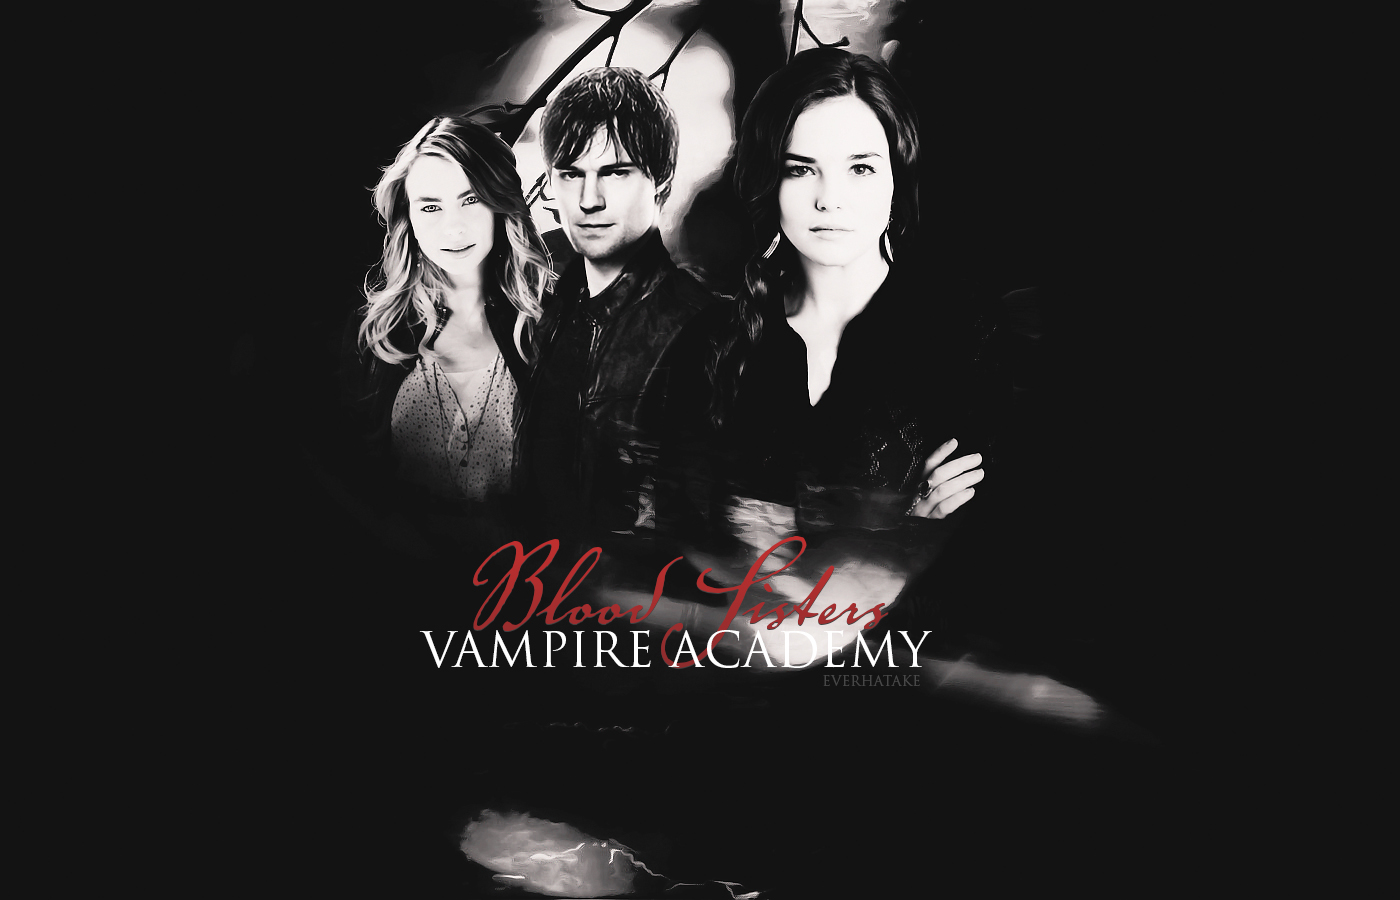 Vampire Academy - Blood Sisters by EverHatake